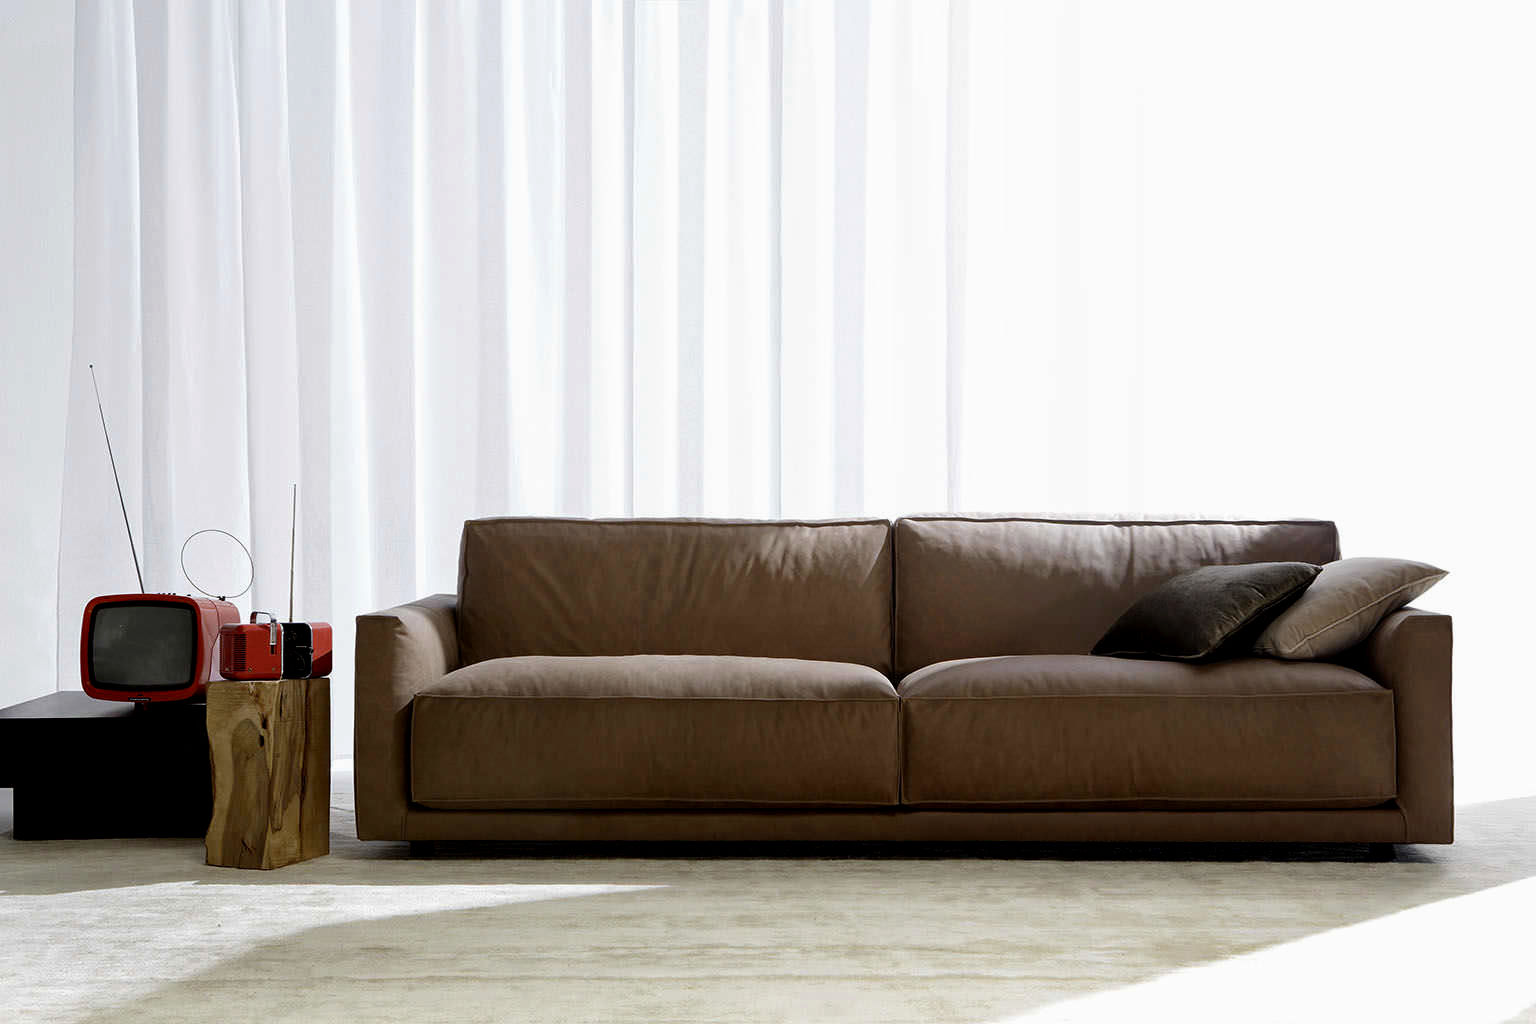 best of red leather sectional sofa design-Fresh Red Leather Sectional sofa Plan